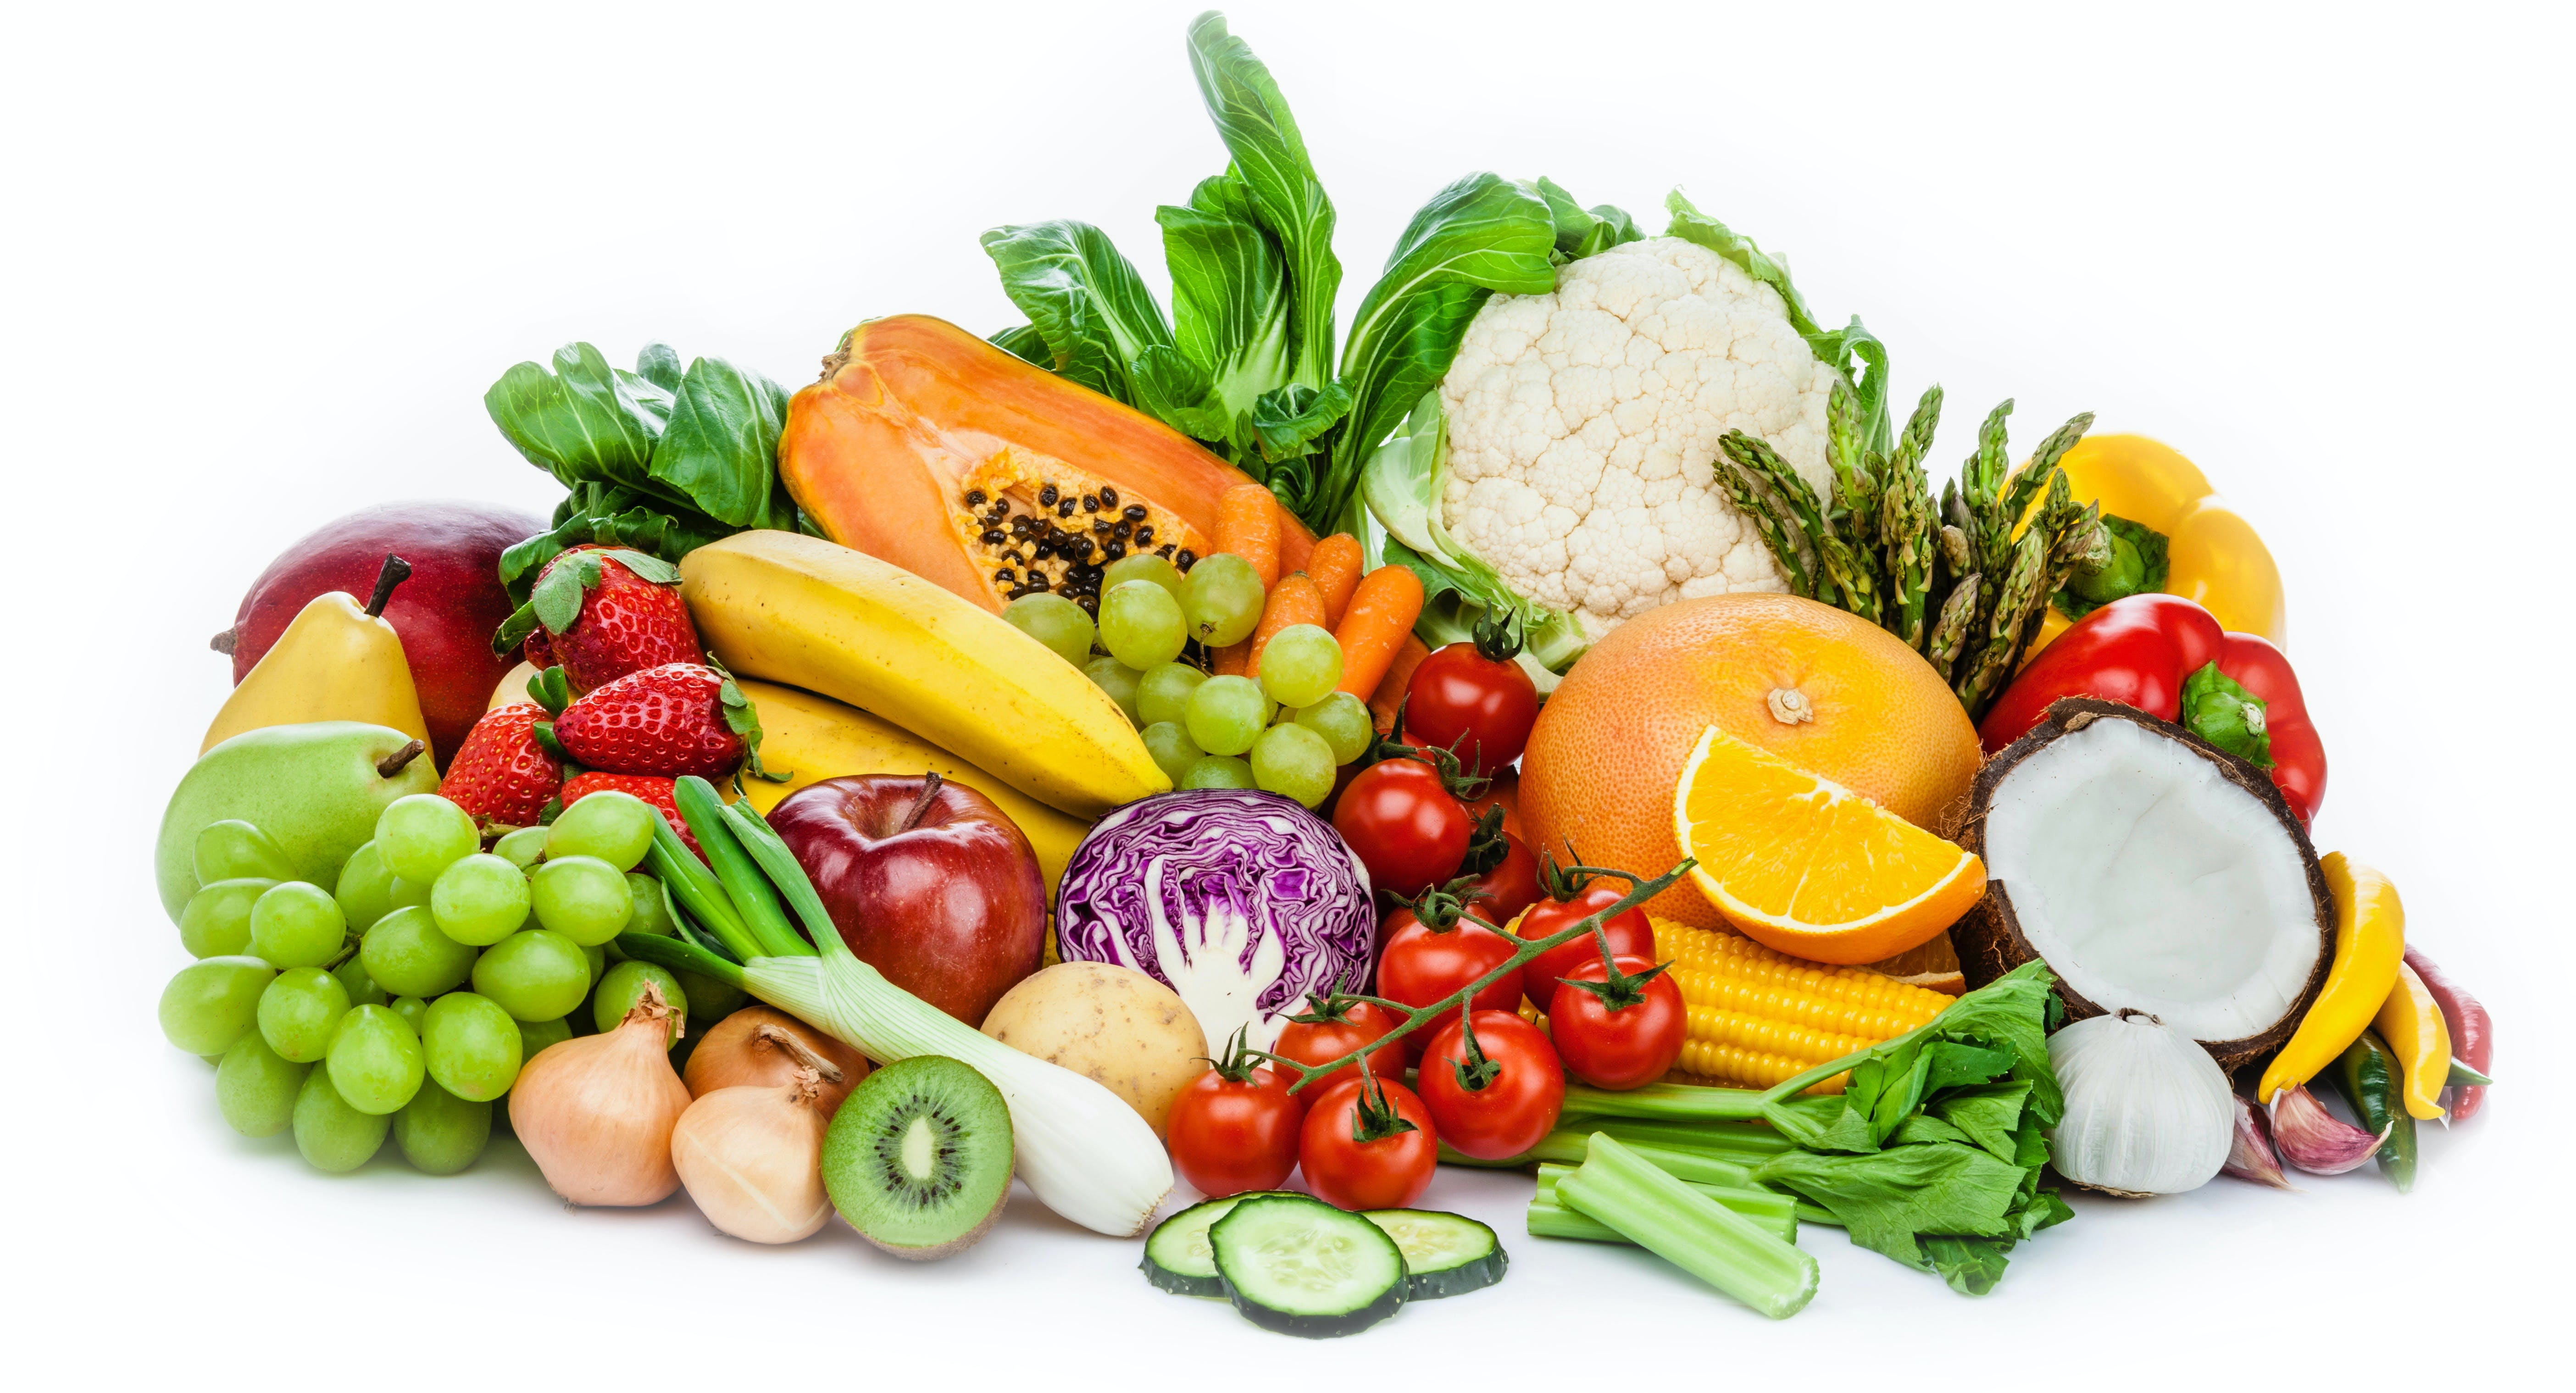 Healthy fresh fruits and vegetables heap isolated on white background